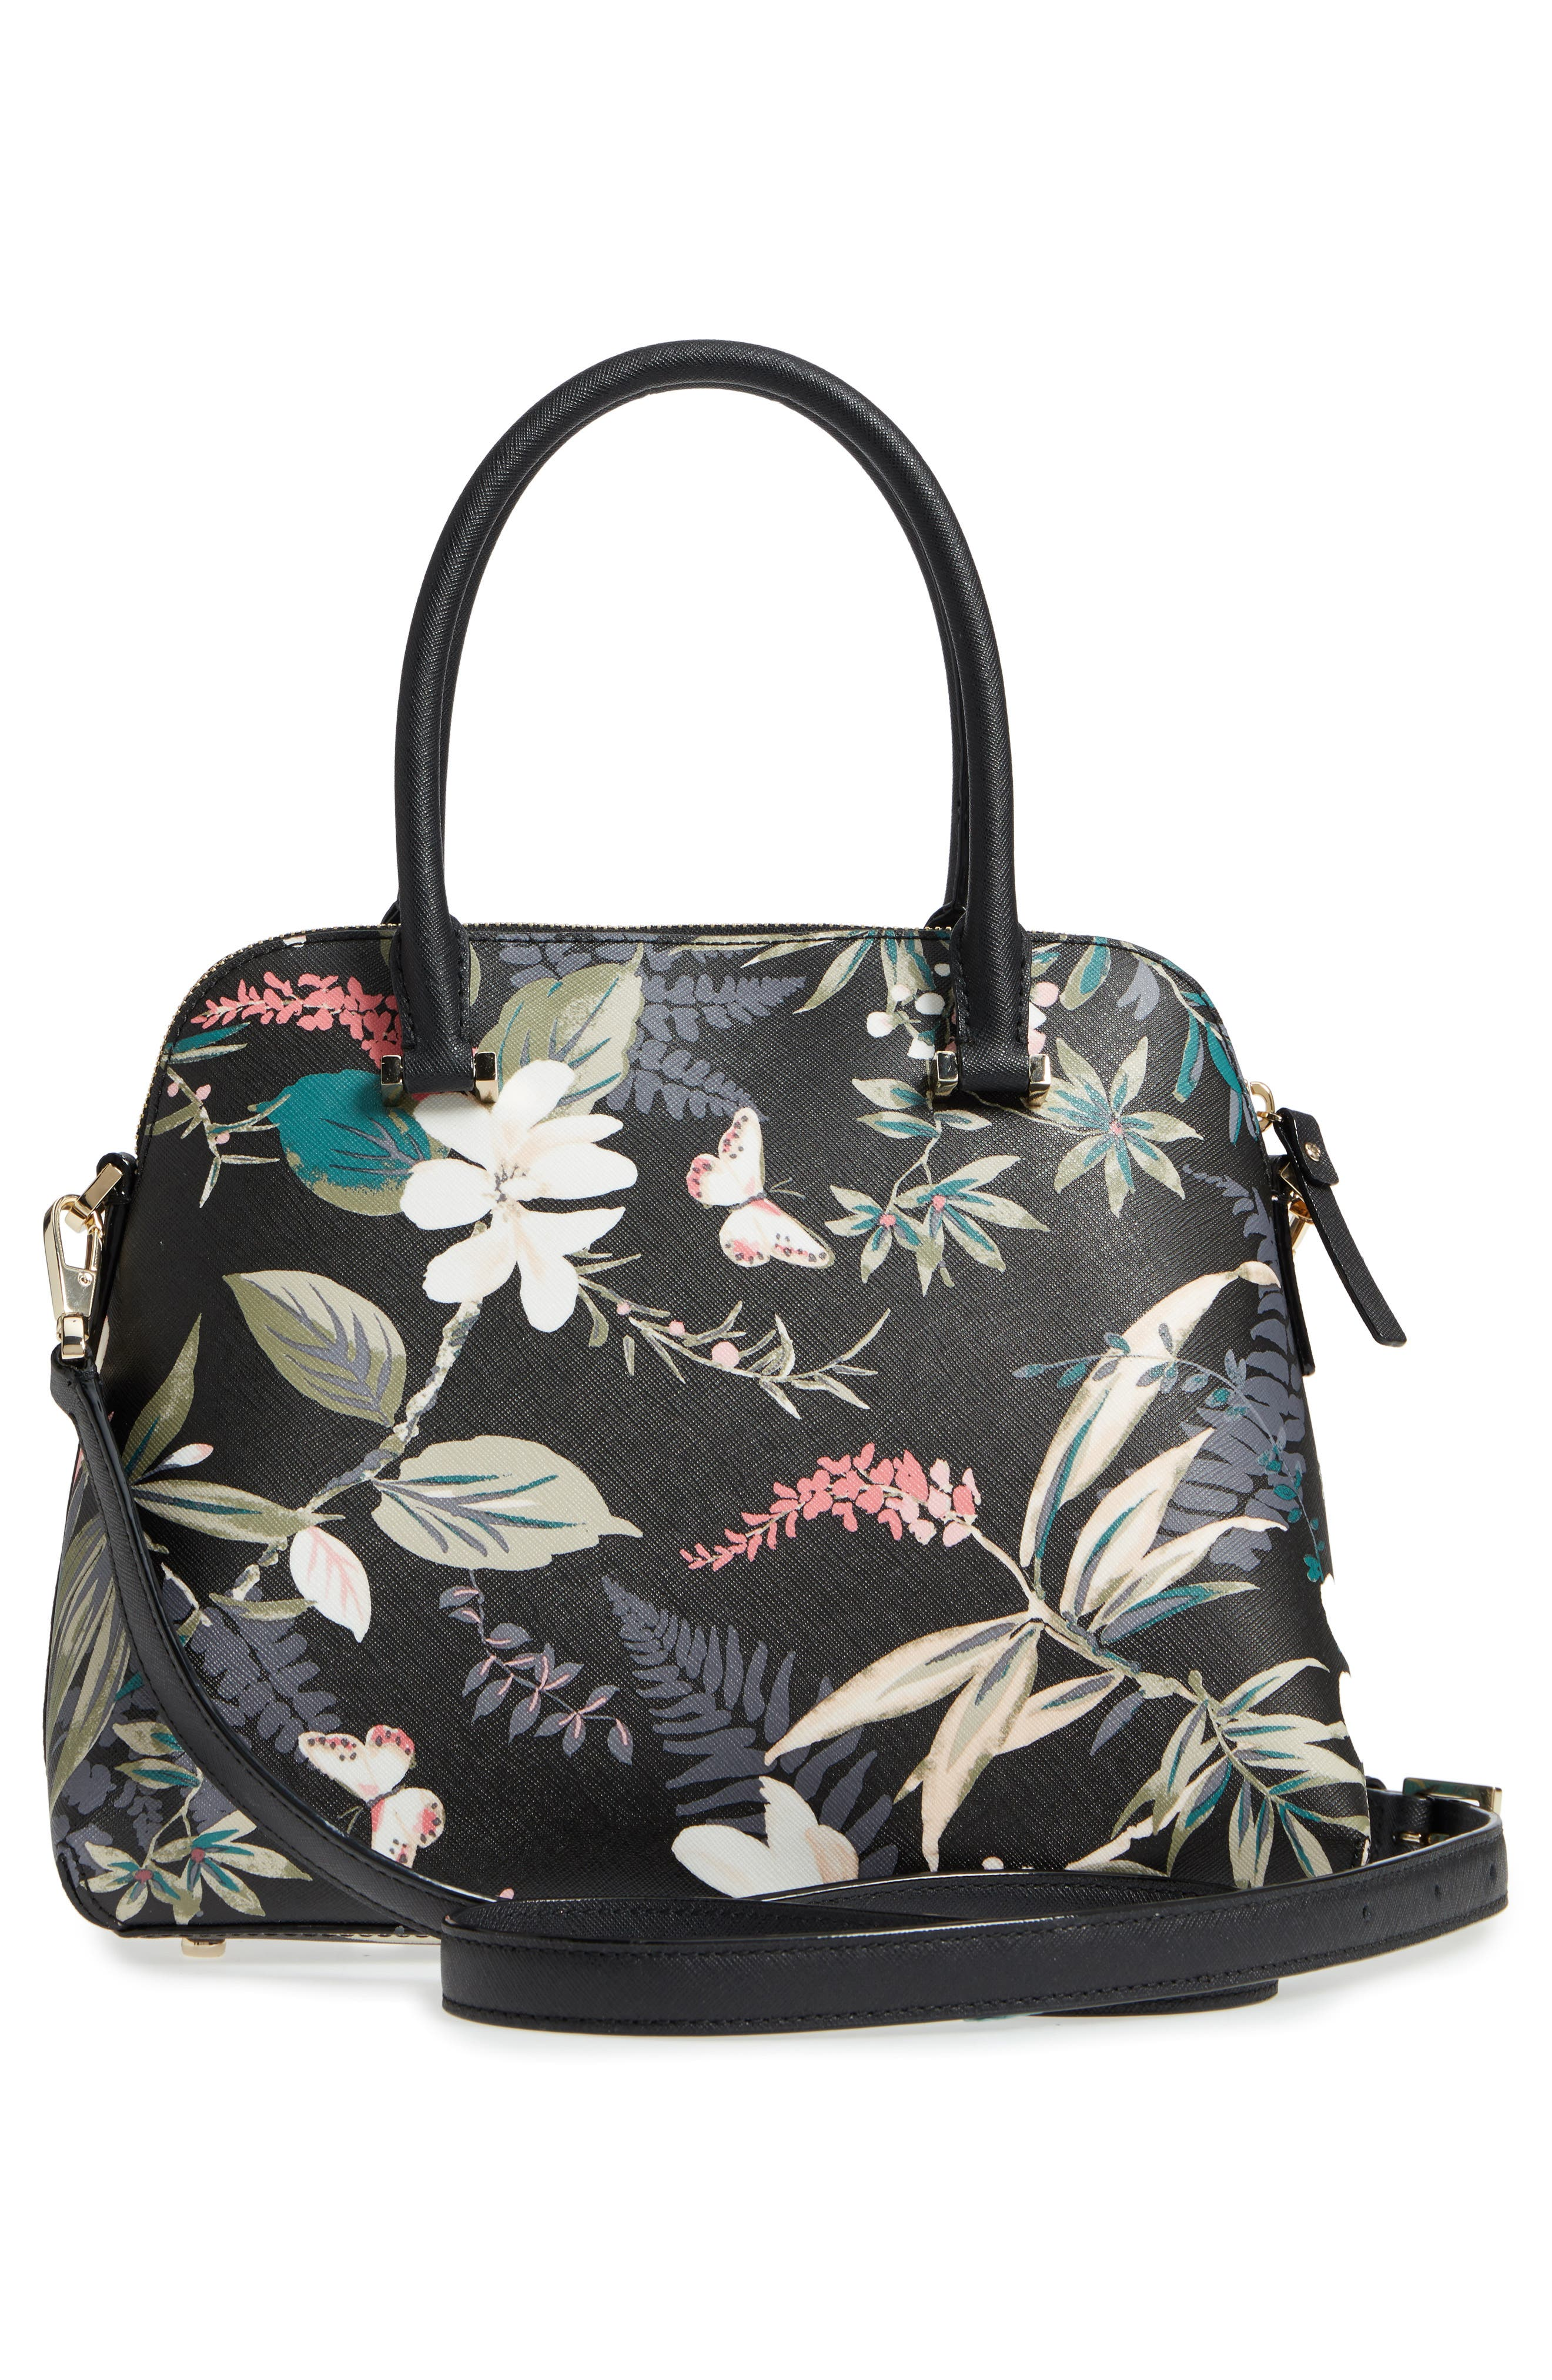 cameron street botanical maise faux leather satchel,                             Alternate thumbnail 3, color,                             Black Multi